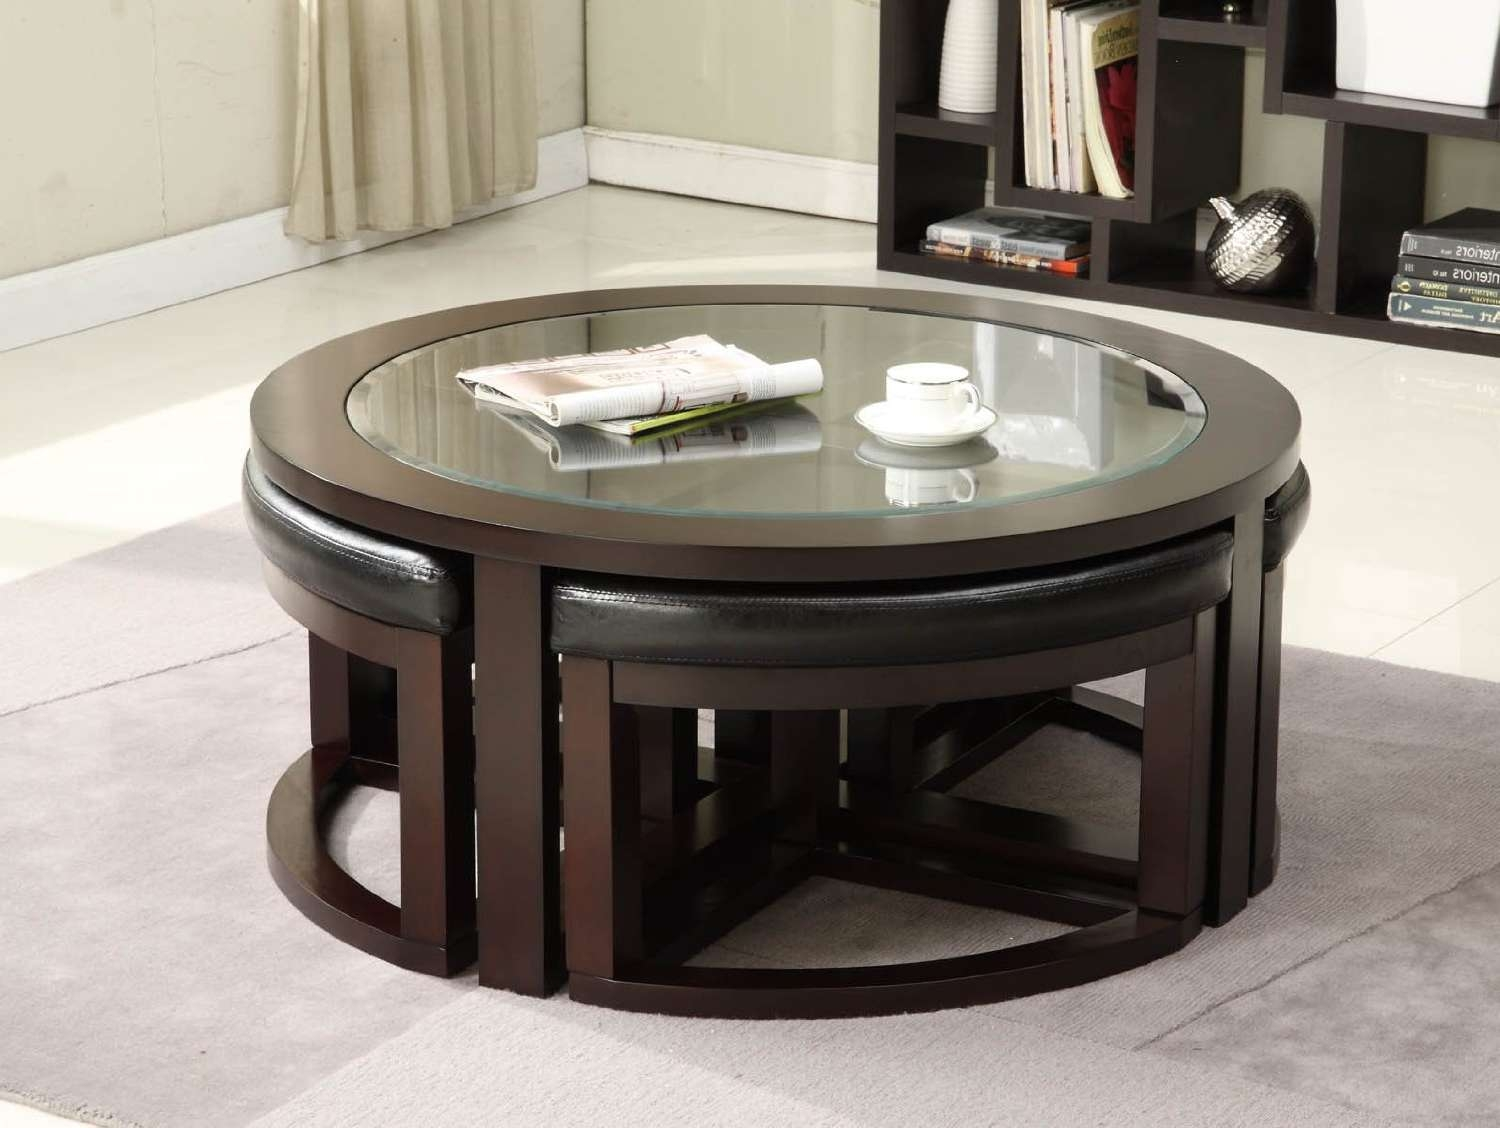 Coffee Table With Chair Stunning Round Coffee Table With Wedge Within Well Known Coffee Table With Chairs (View 4 of 20)